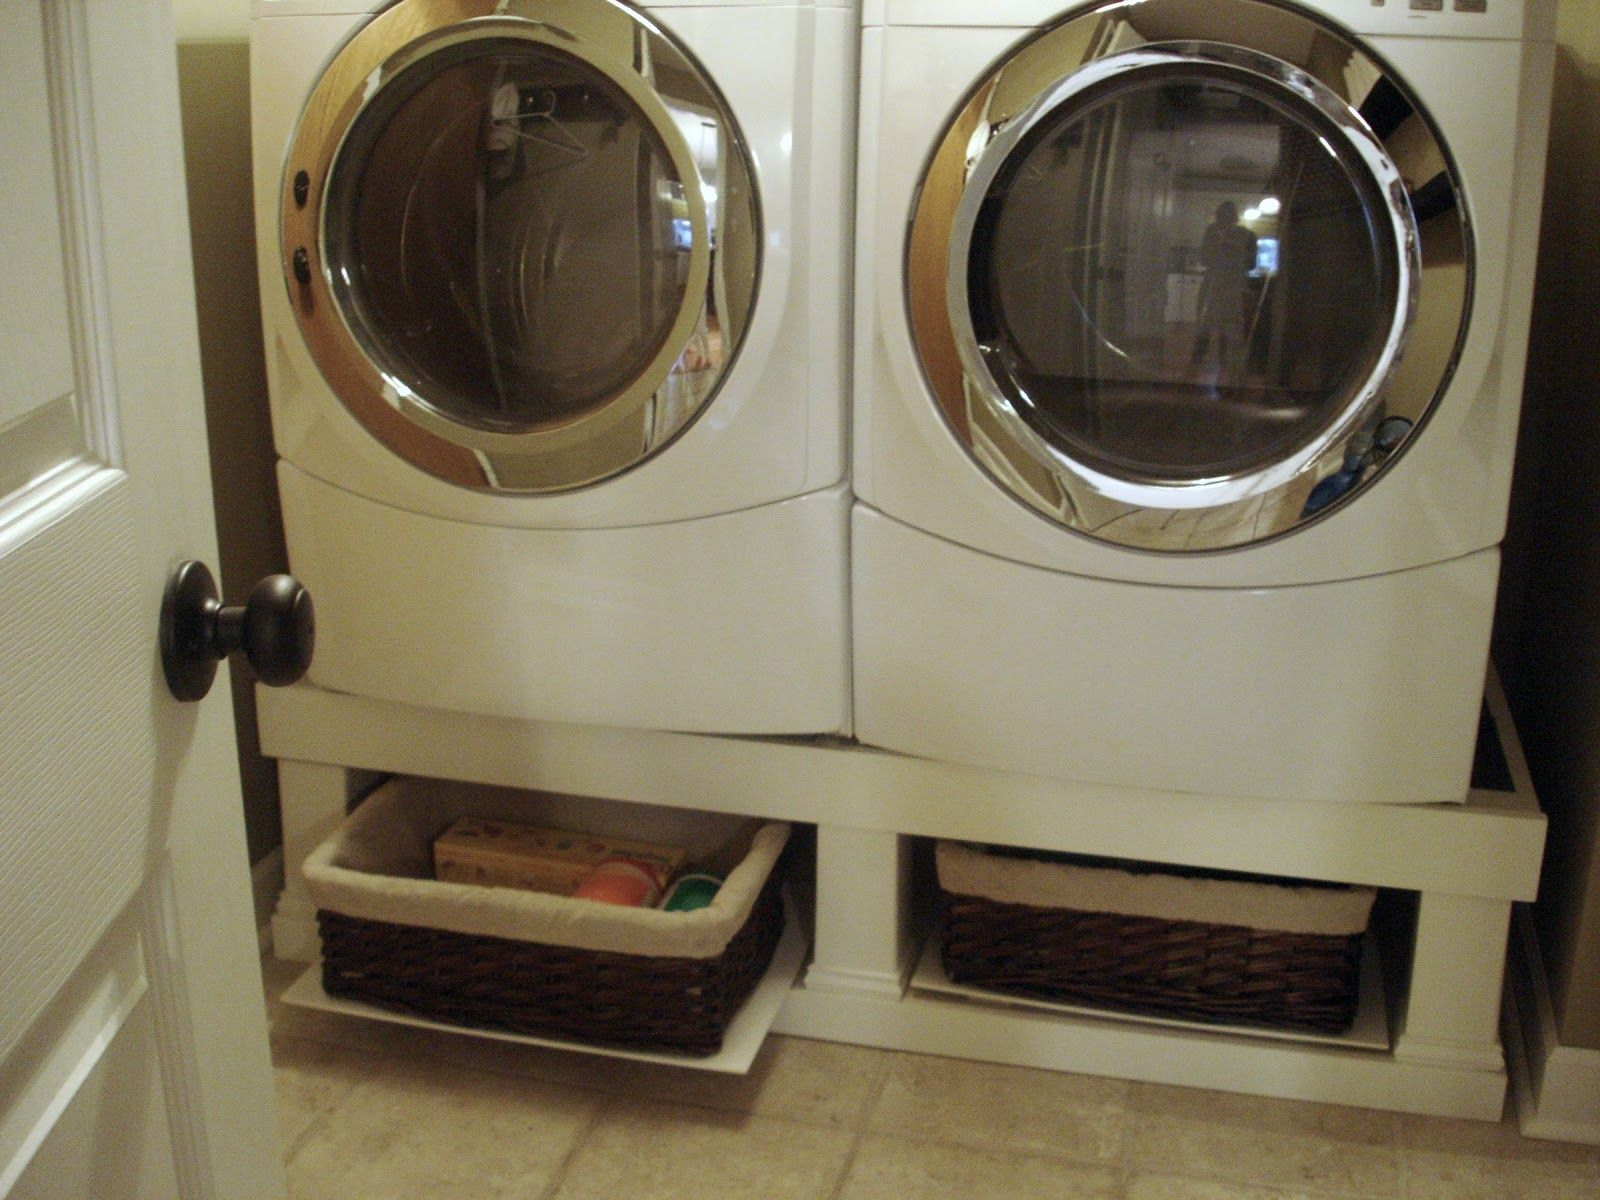 Crazy Wonderful WasherDryer Stand Installed Front Load Washer